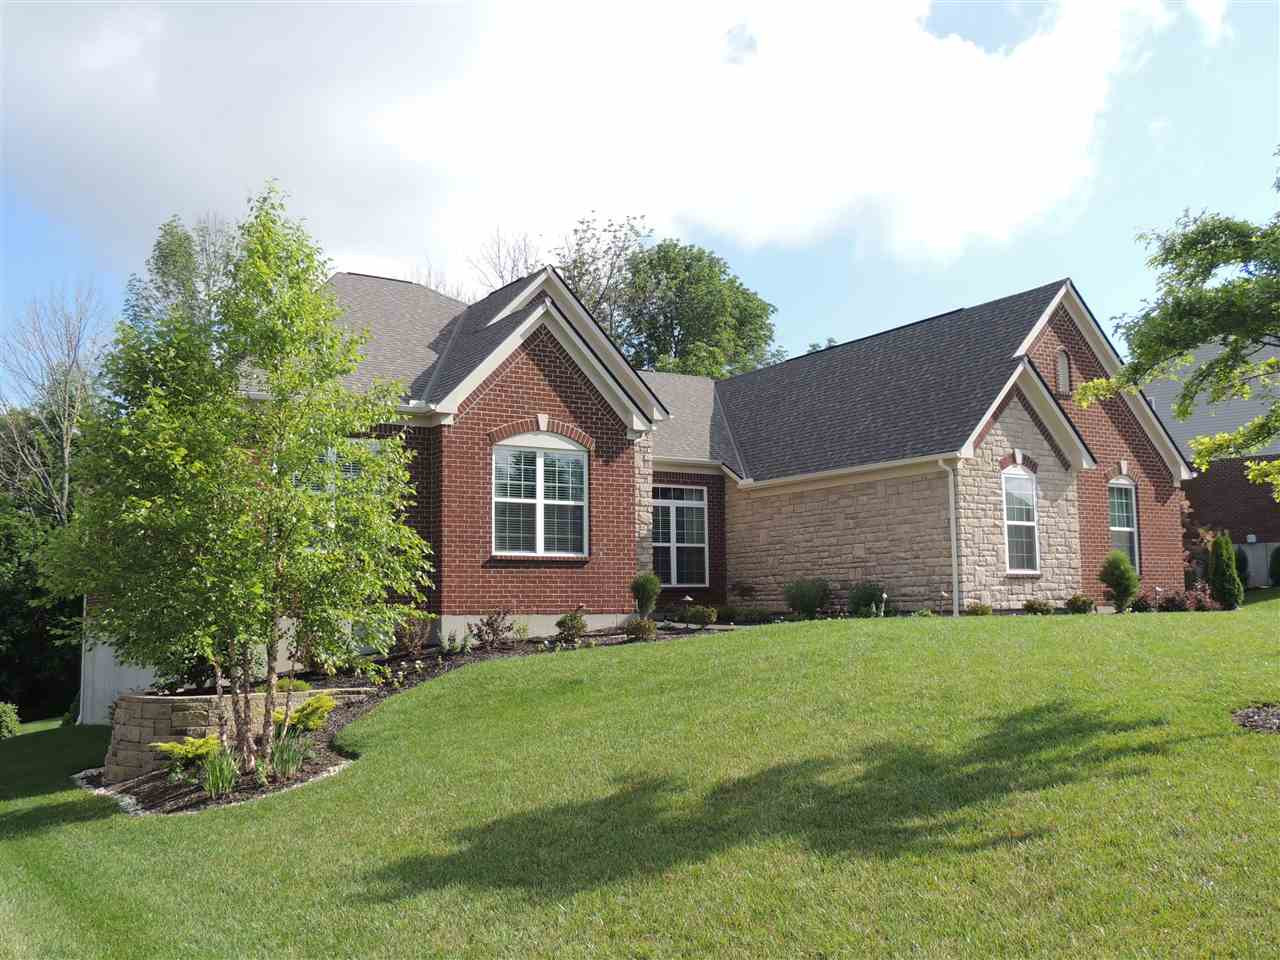 Photo 3 for 2578 Twin Hills Ct Union, KY 41091